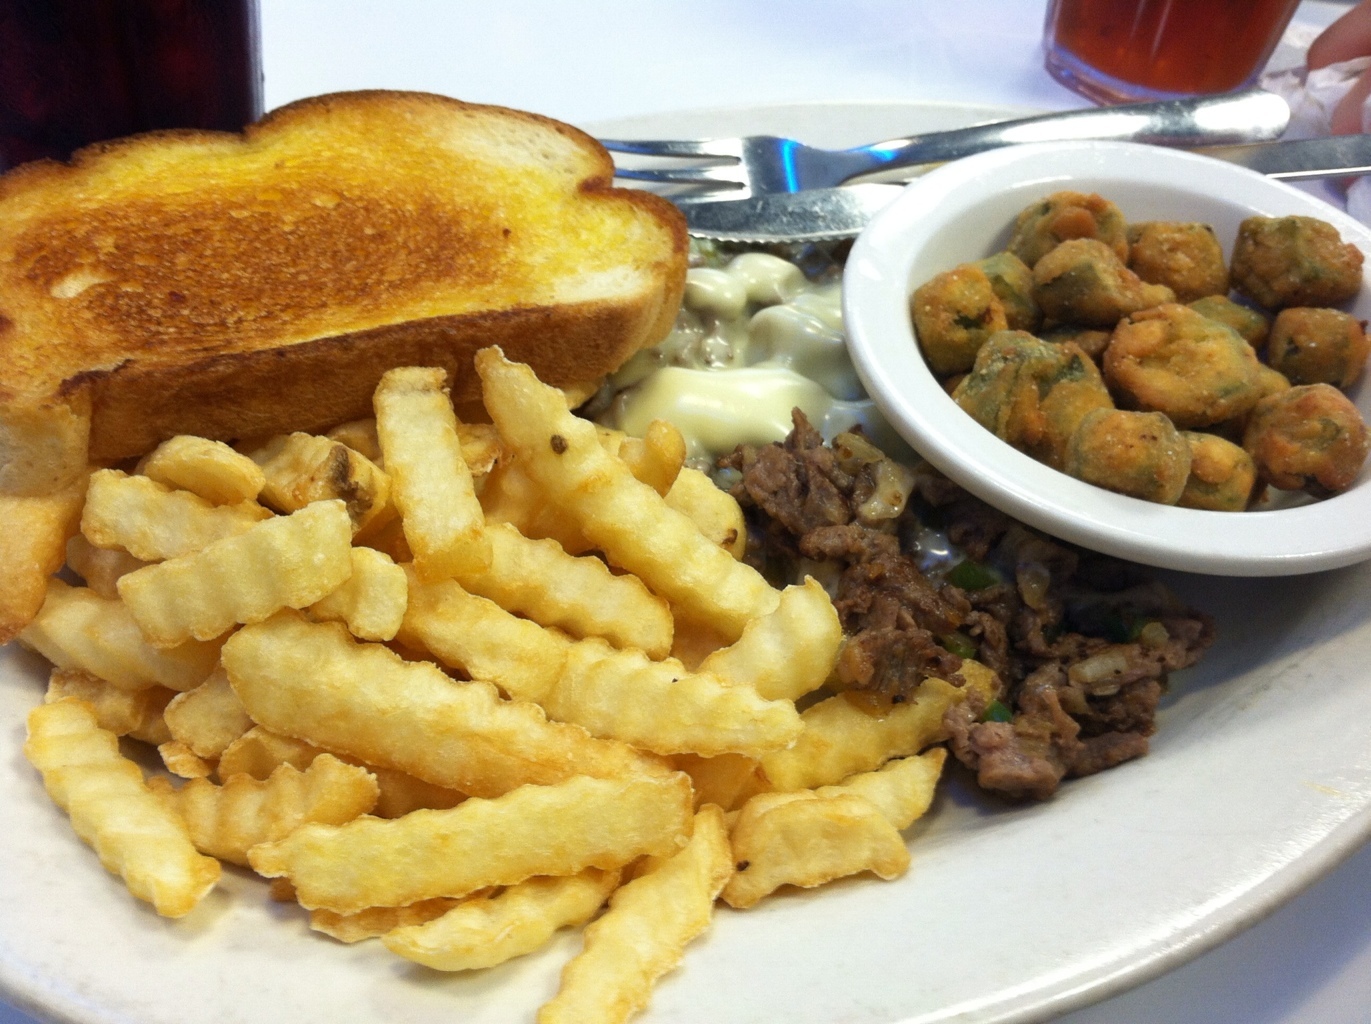 Philly Cheesesteak Plate with Fried Okra and French Fries at Wayne's Family Diner